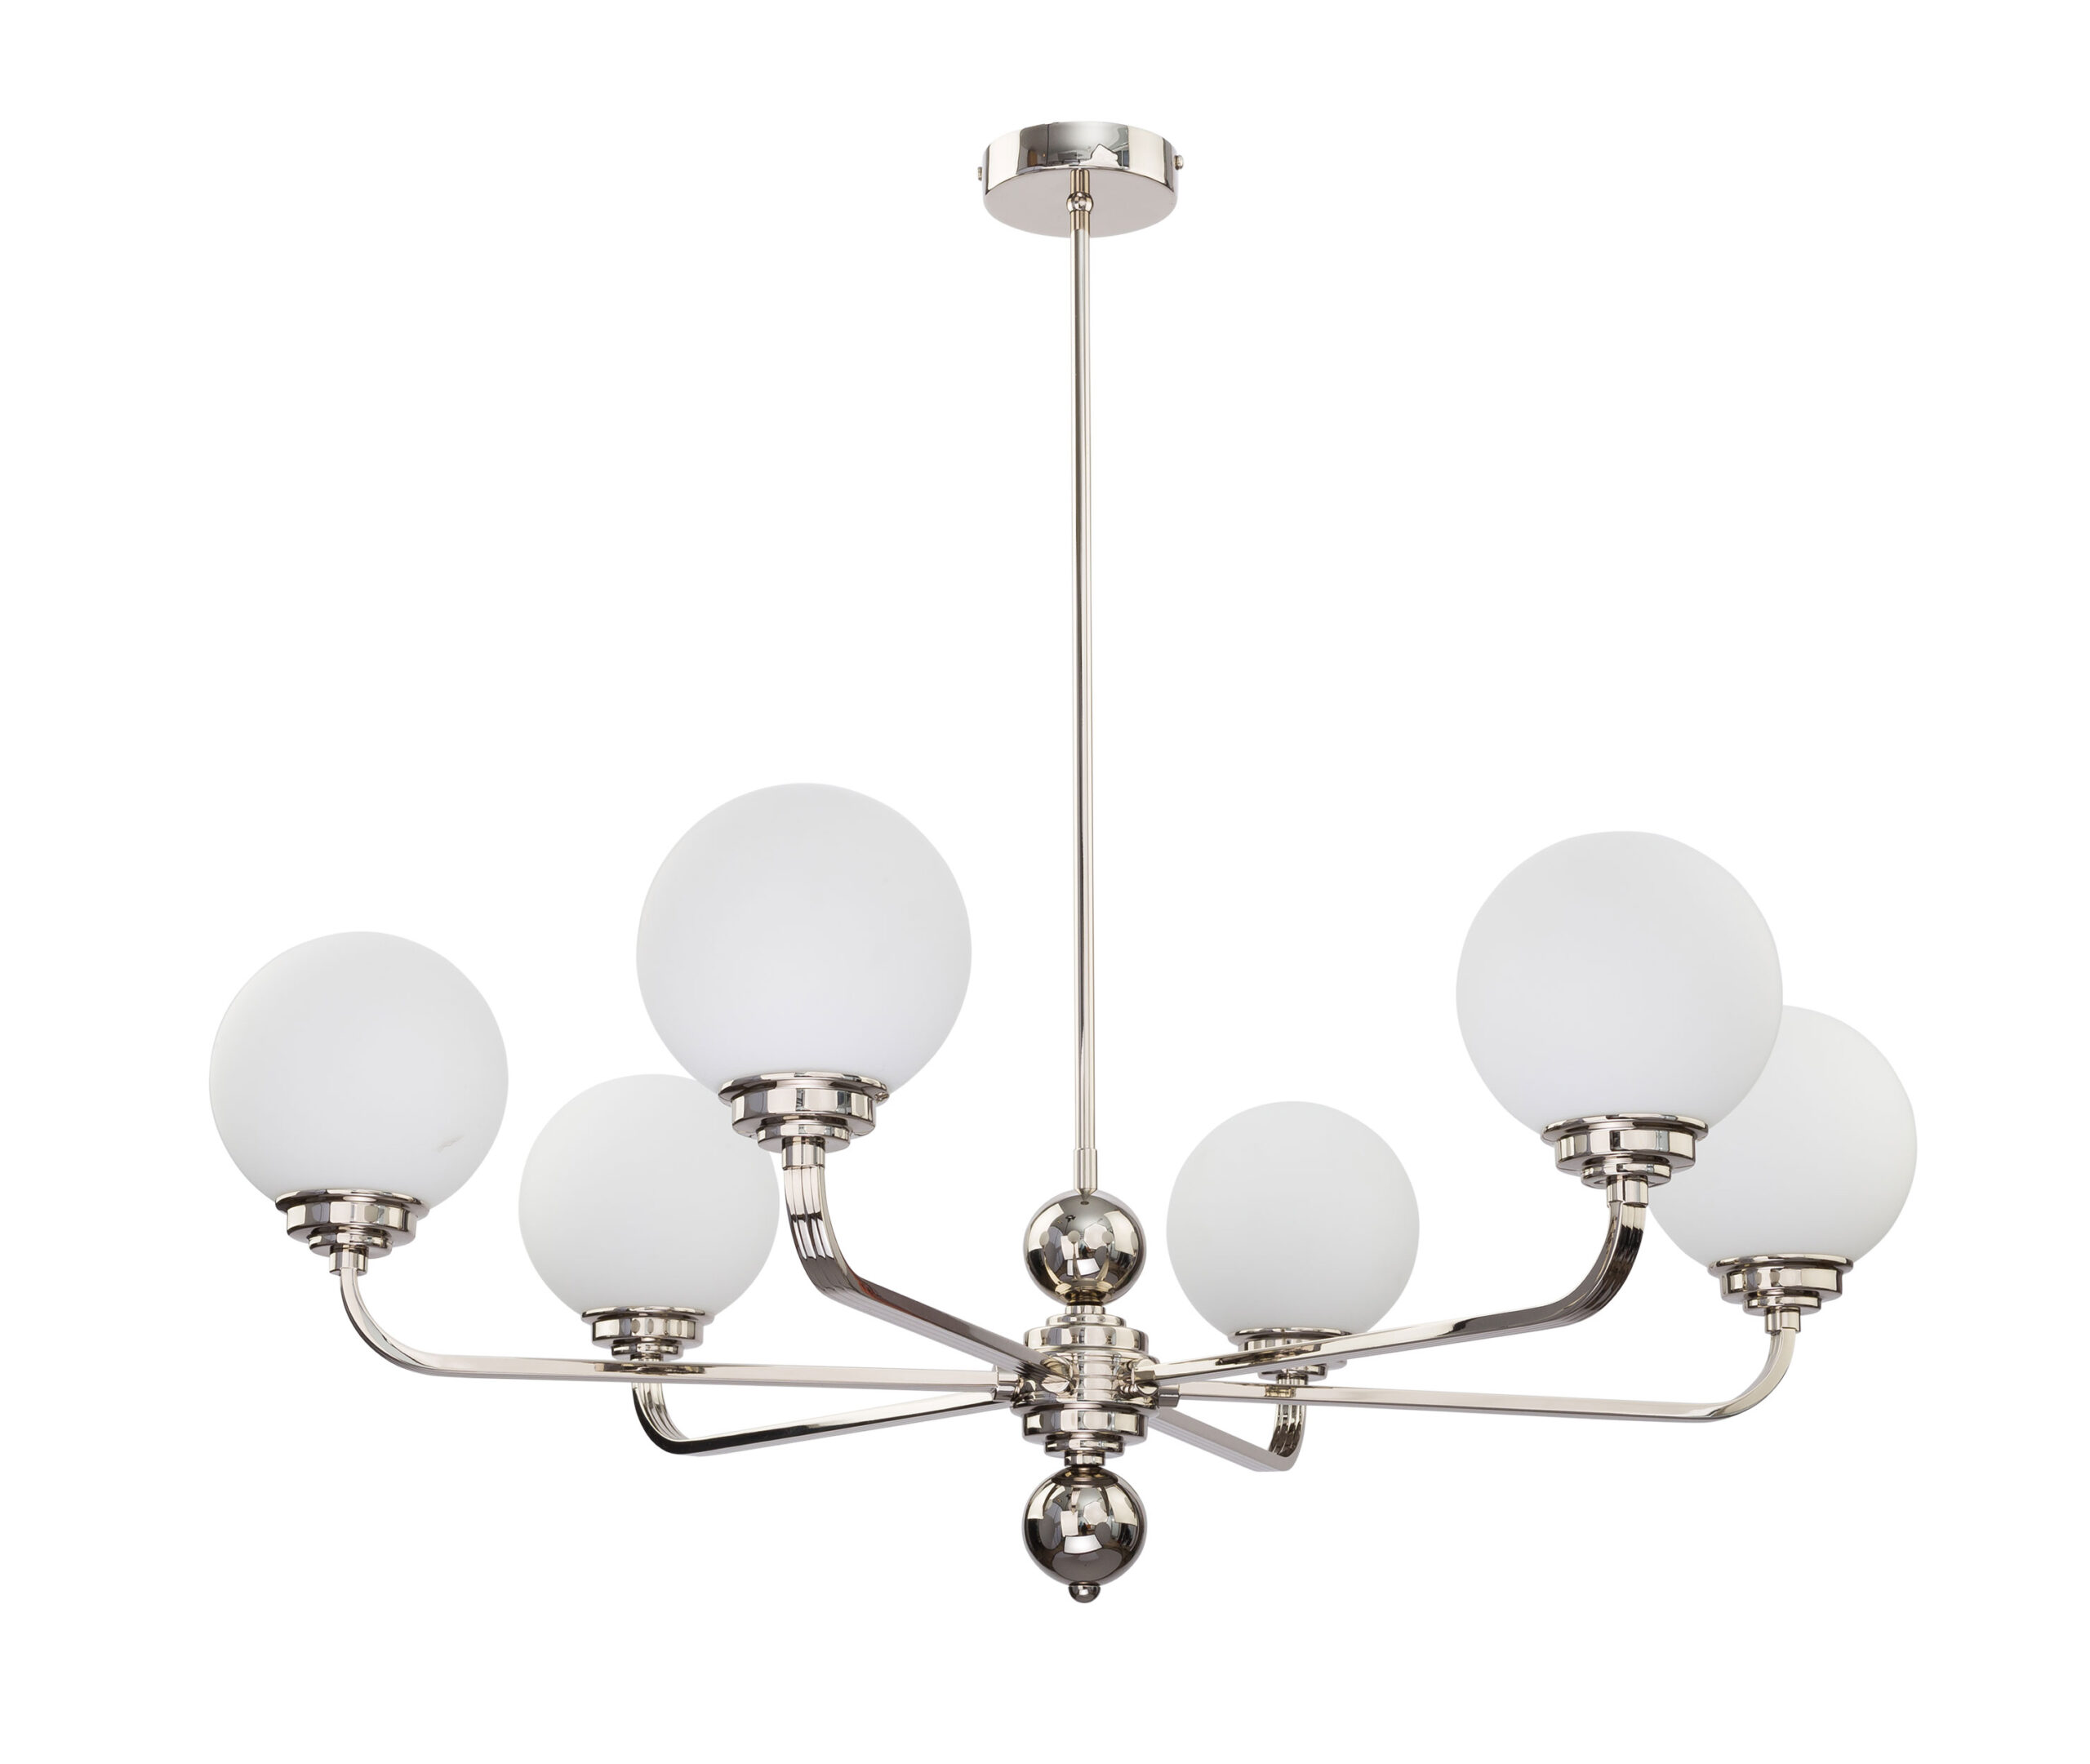 Lighting room ABANO 6 light modern luxury chandelier in gold with black shades